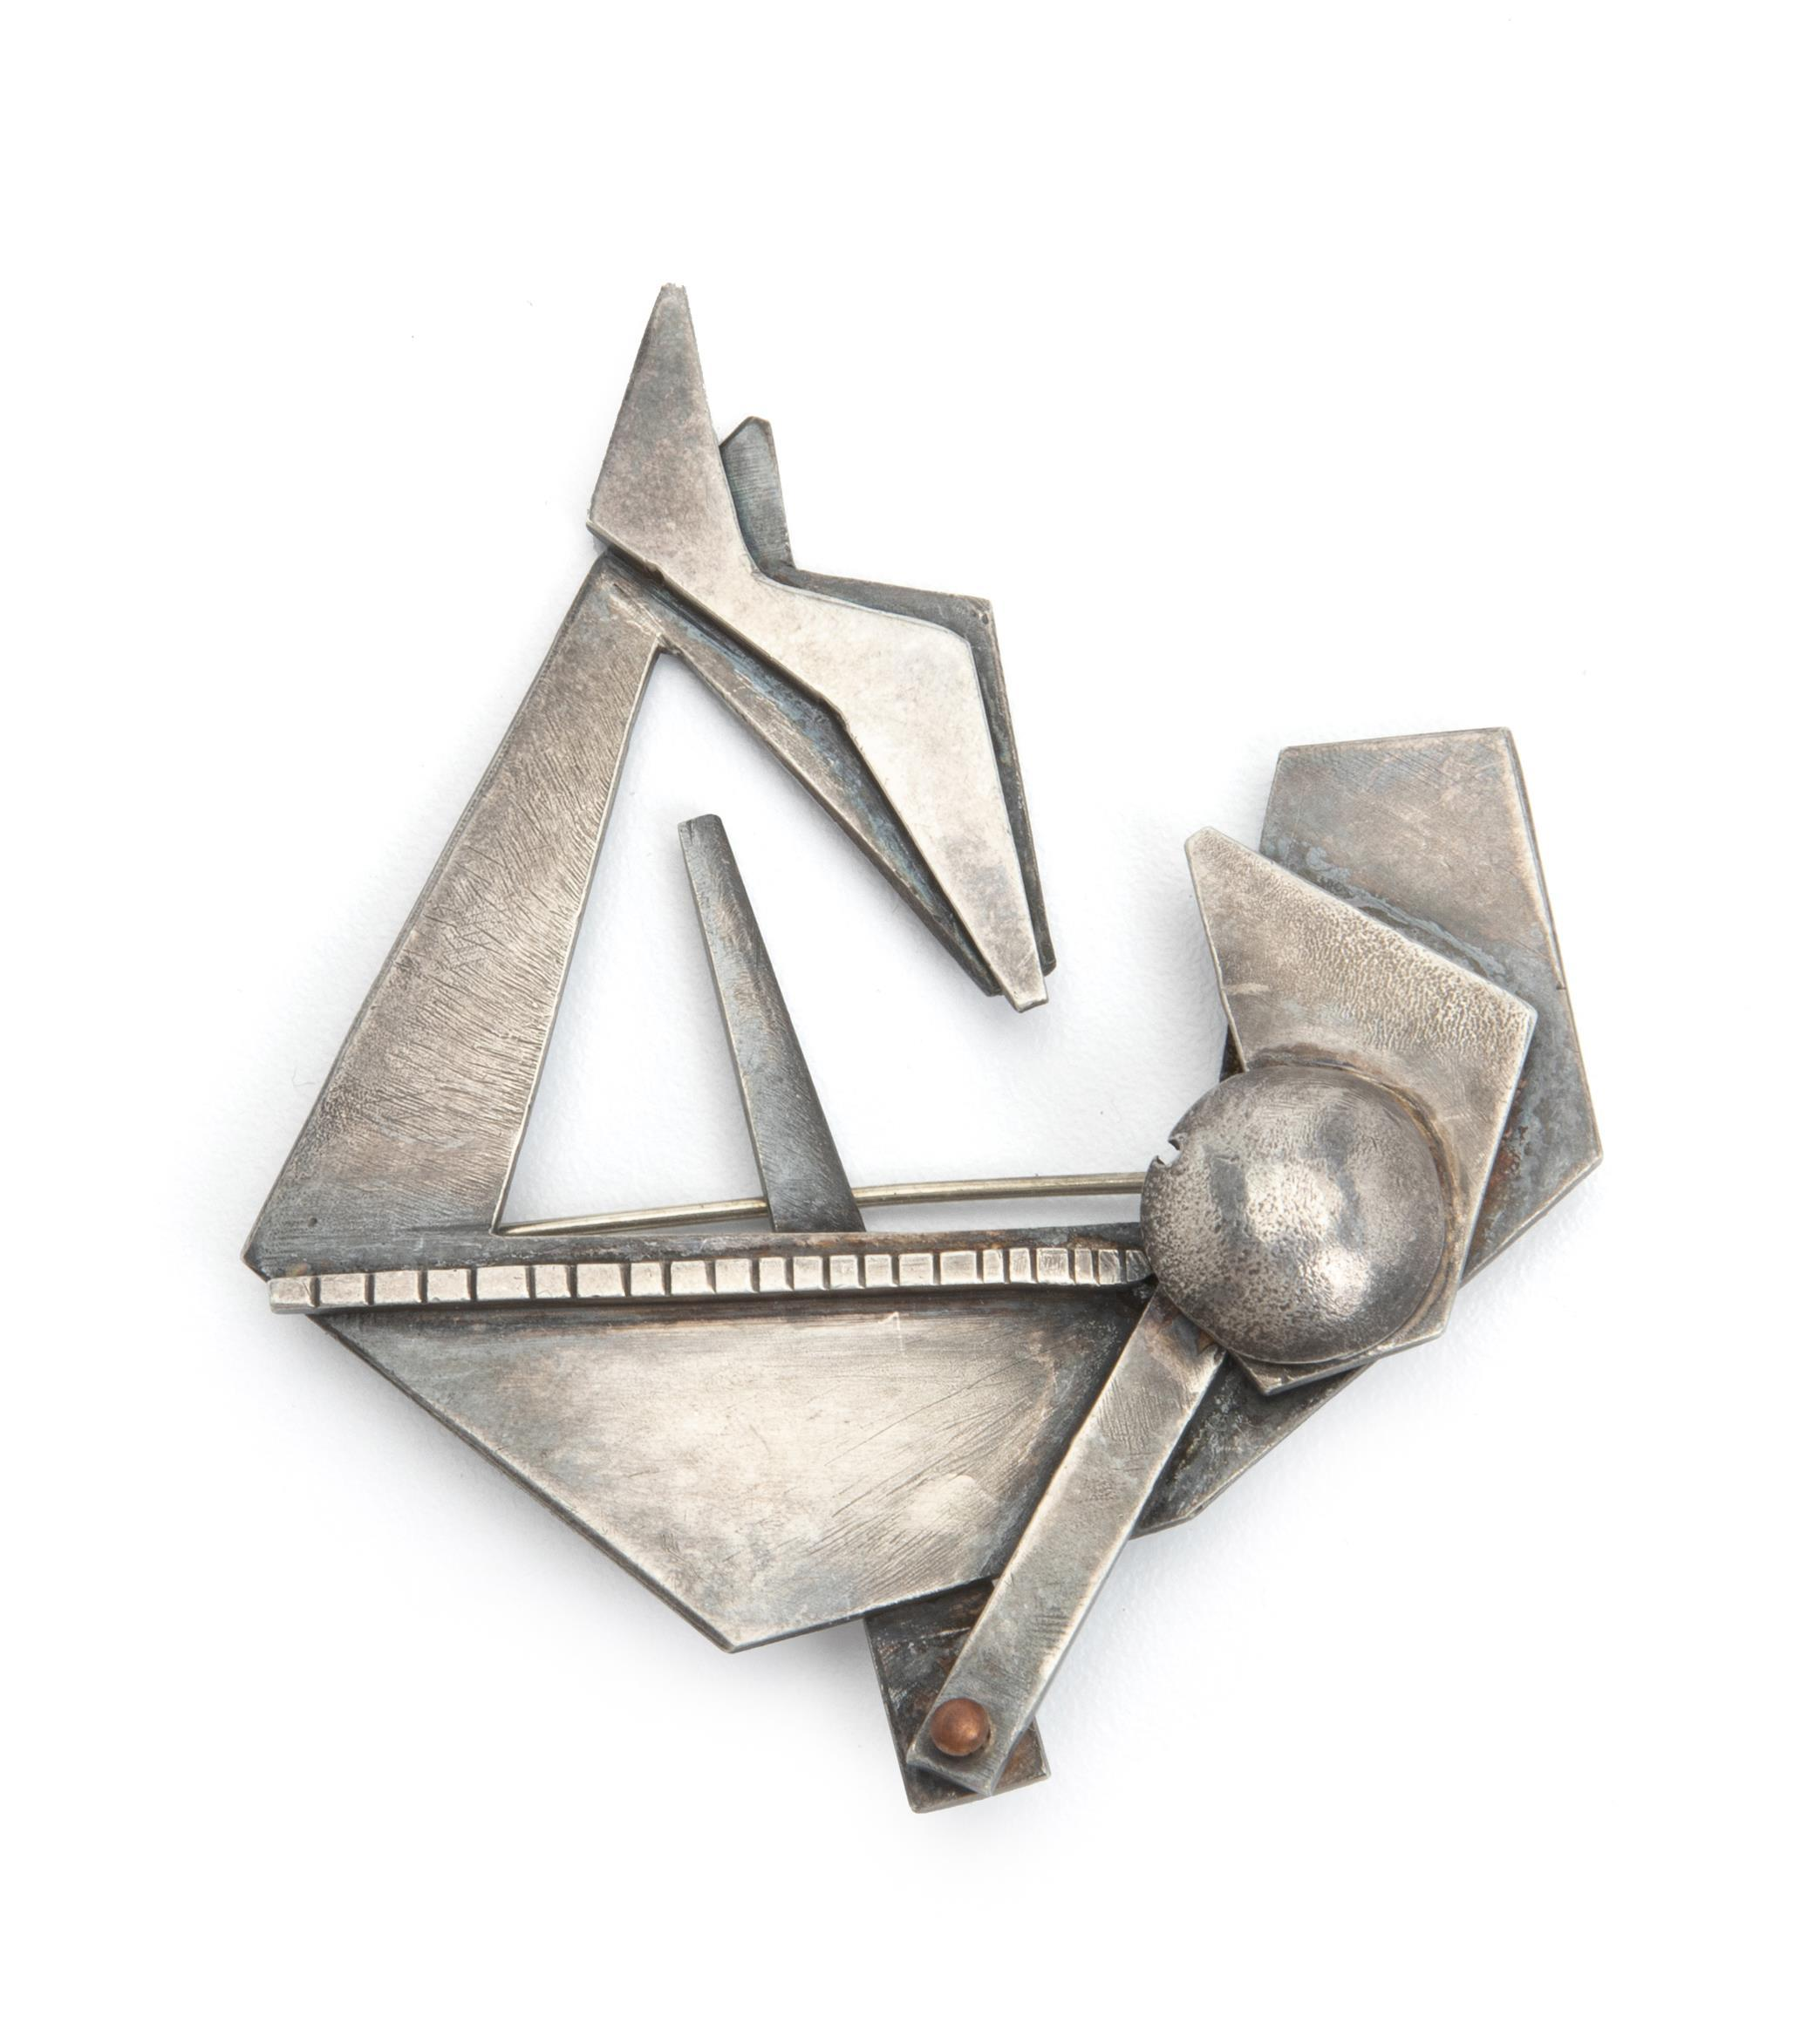 "Peter Macchiarini, (1909-2011, American), Abstract brooch, Sterling silver, 2.5"" H x 3"" W"